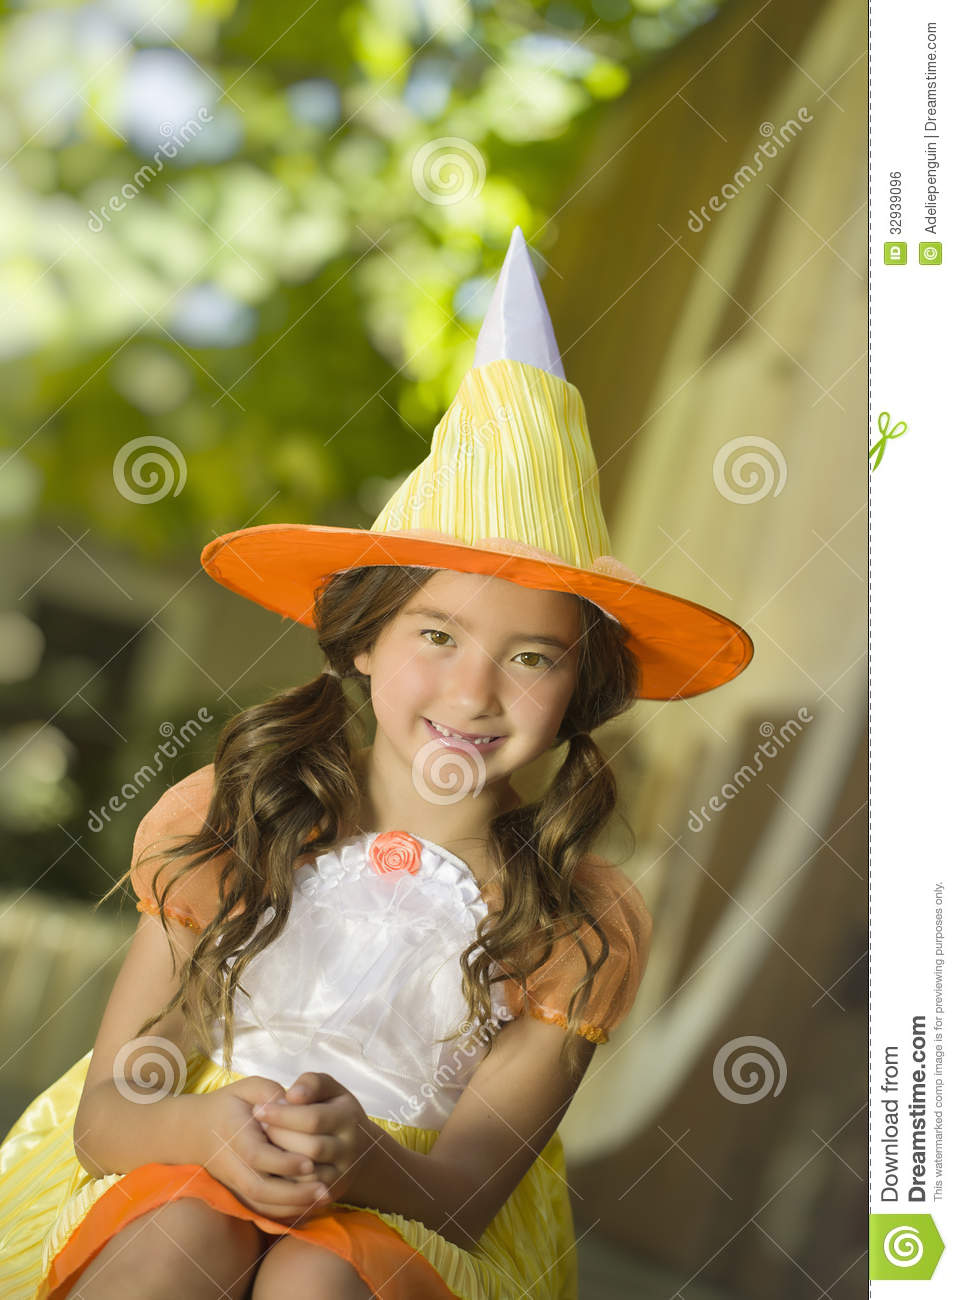 Girl In Witch Costume, Halloween Royalty Free Stock Image - Image ...